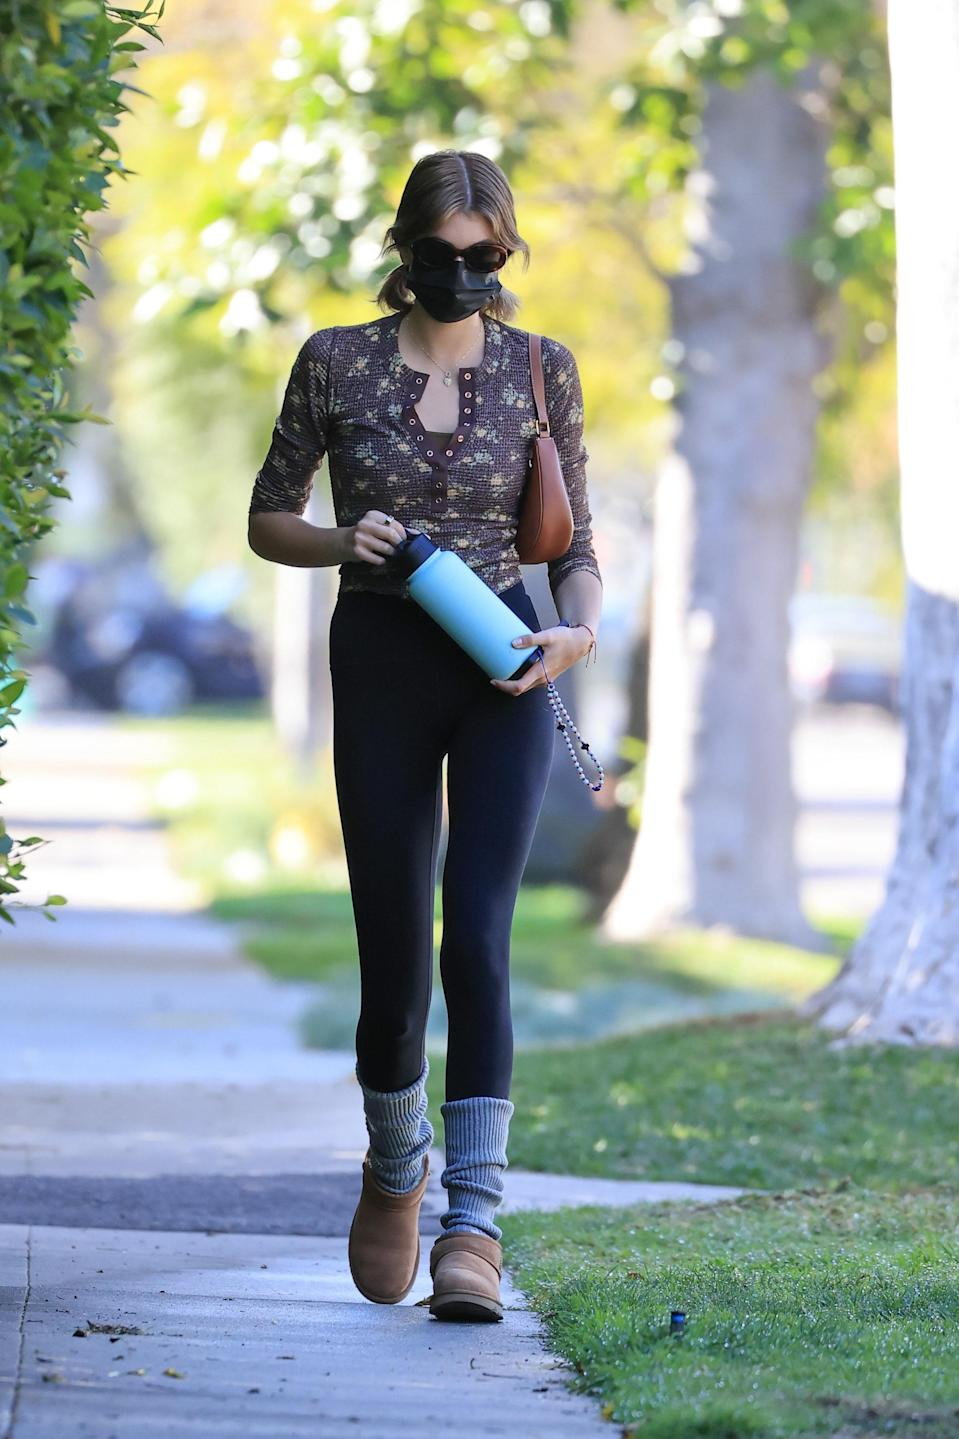 A hydro flask and UGGs is really all she needs.